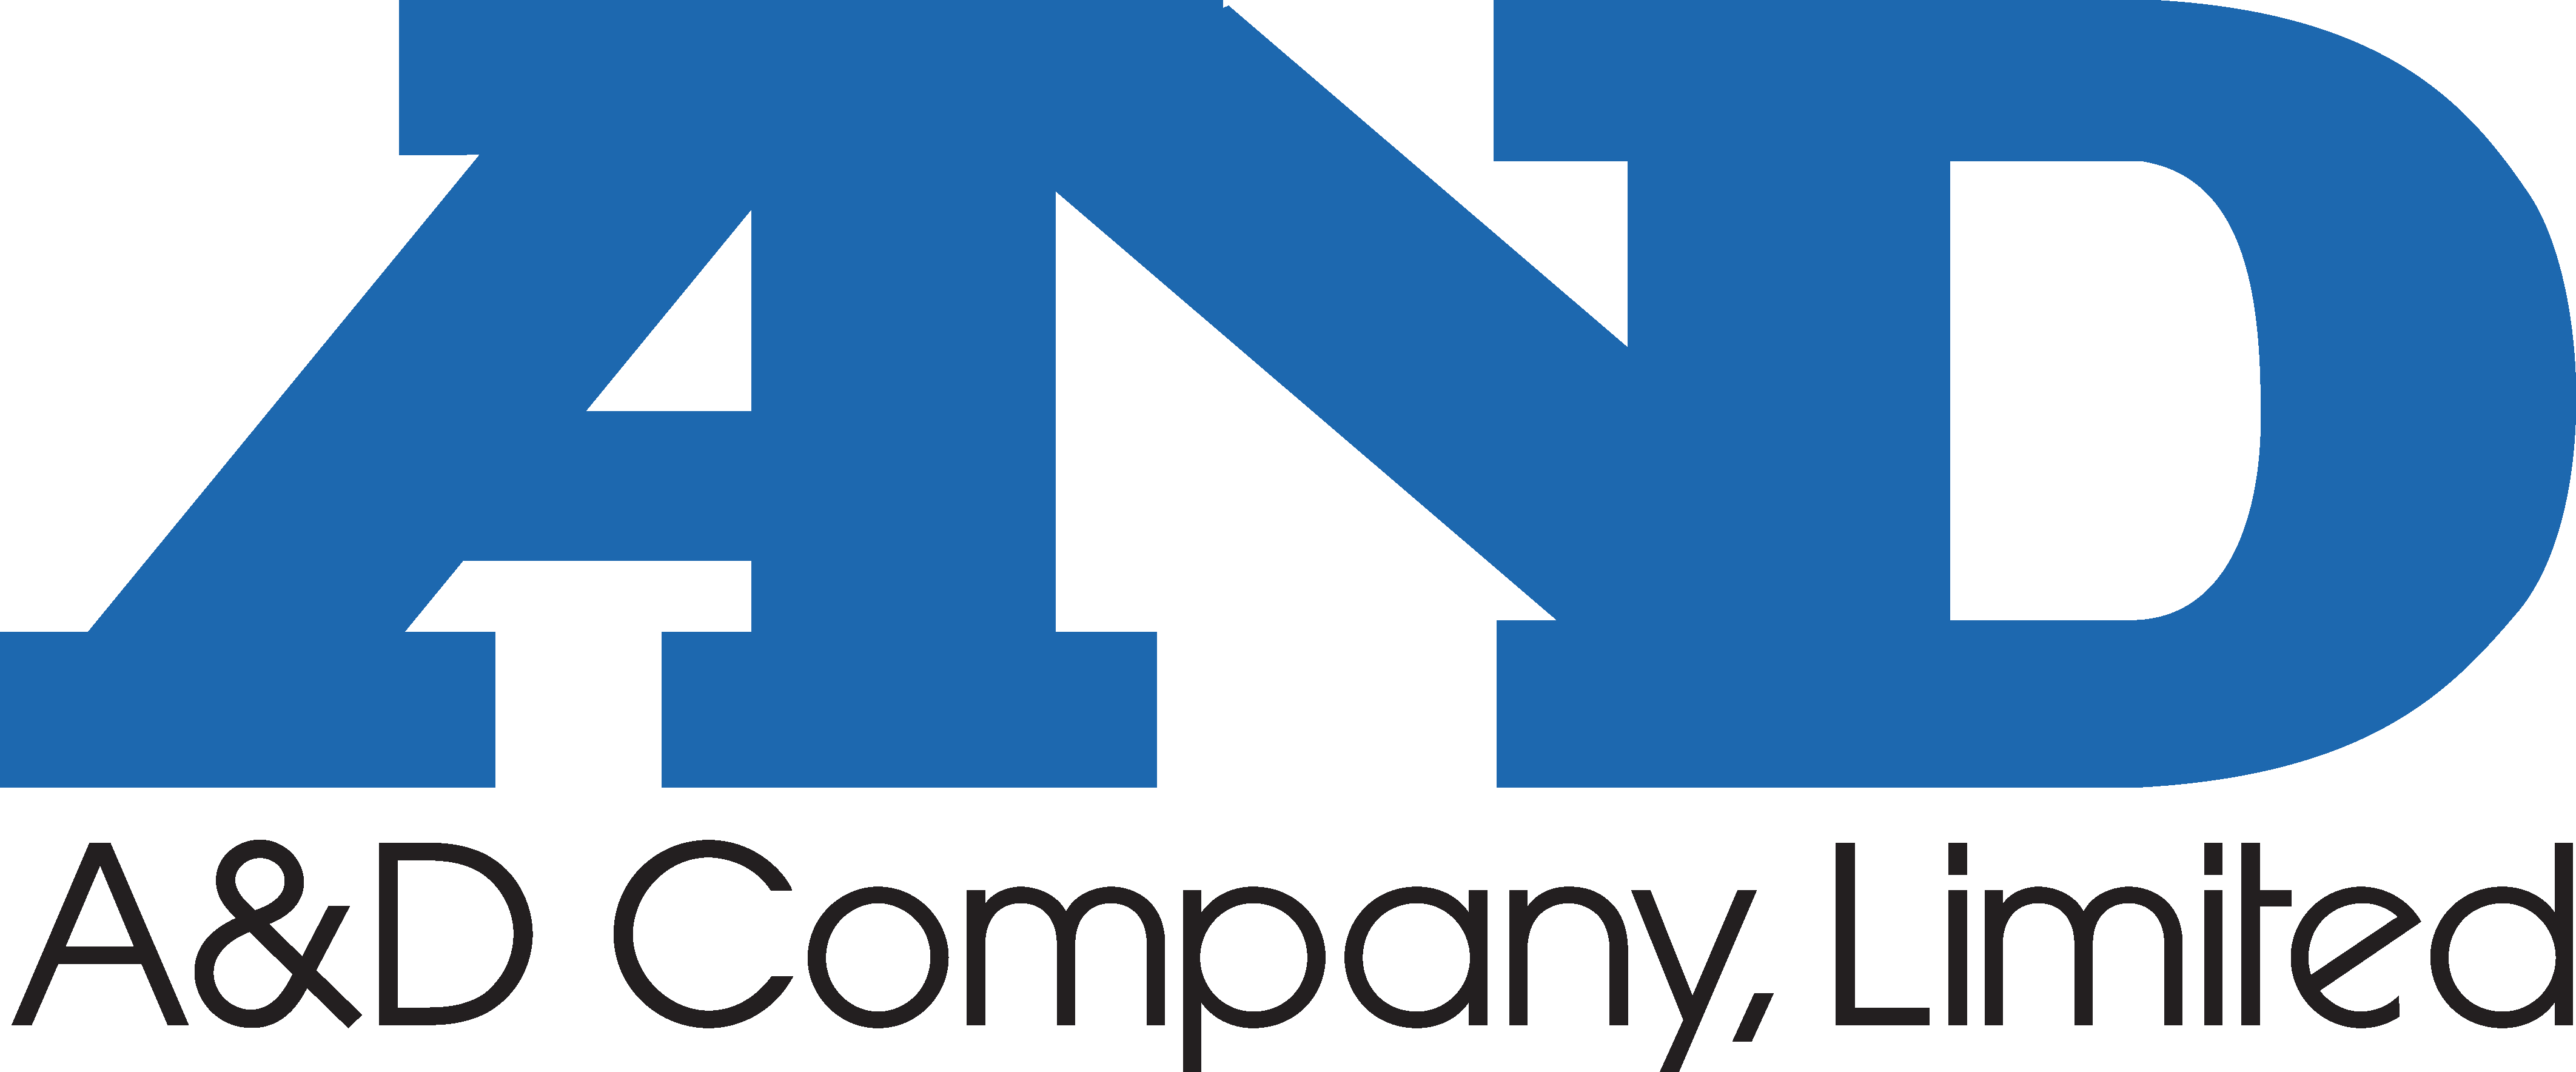 A&D COMPANY LIMITED